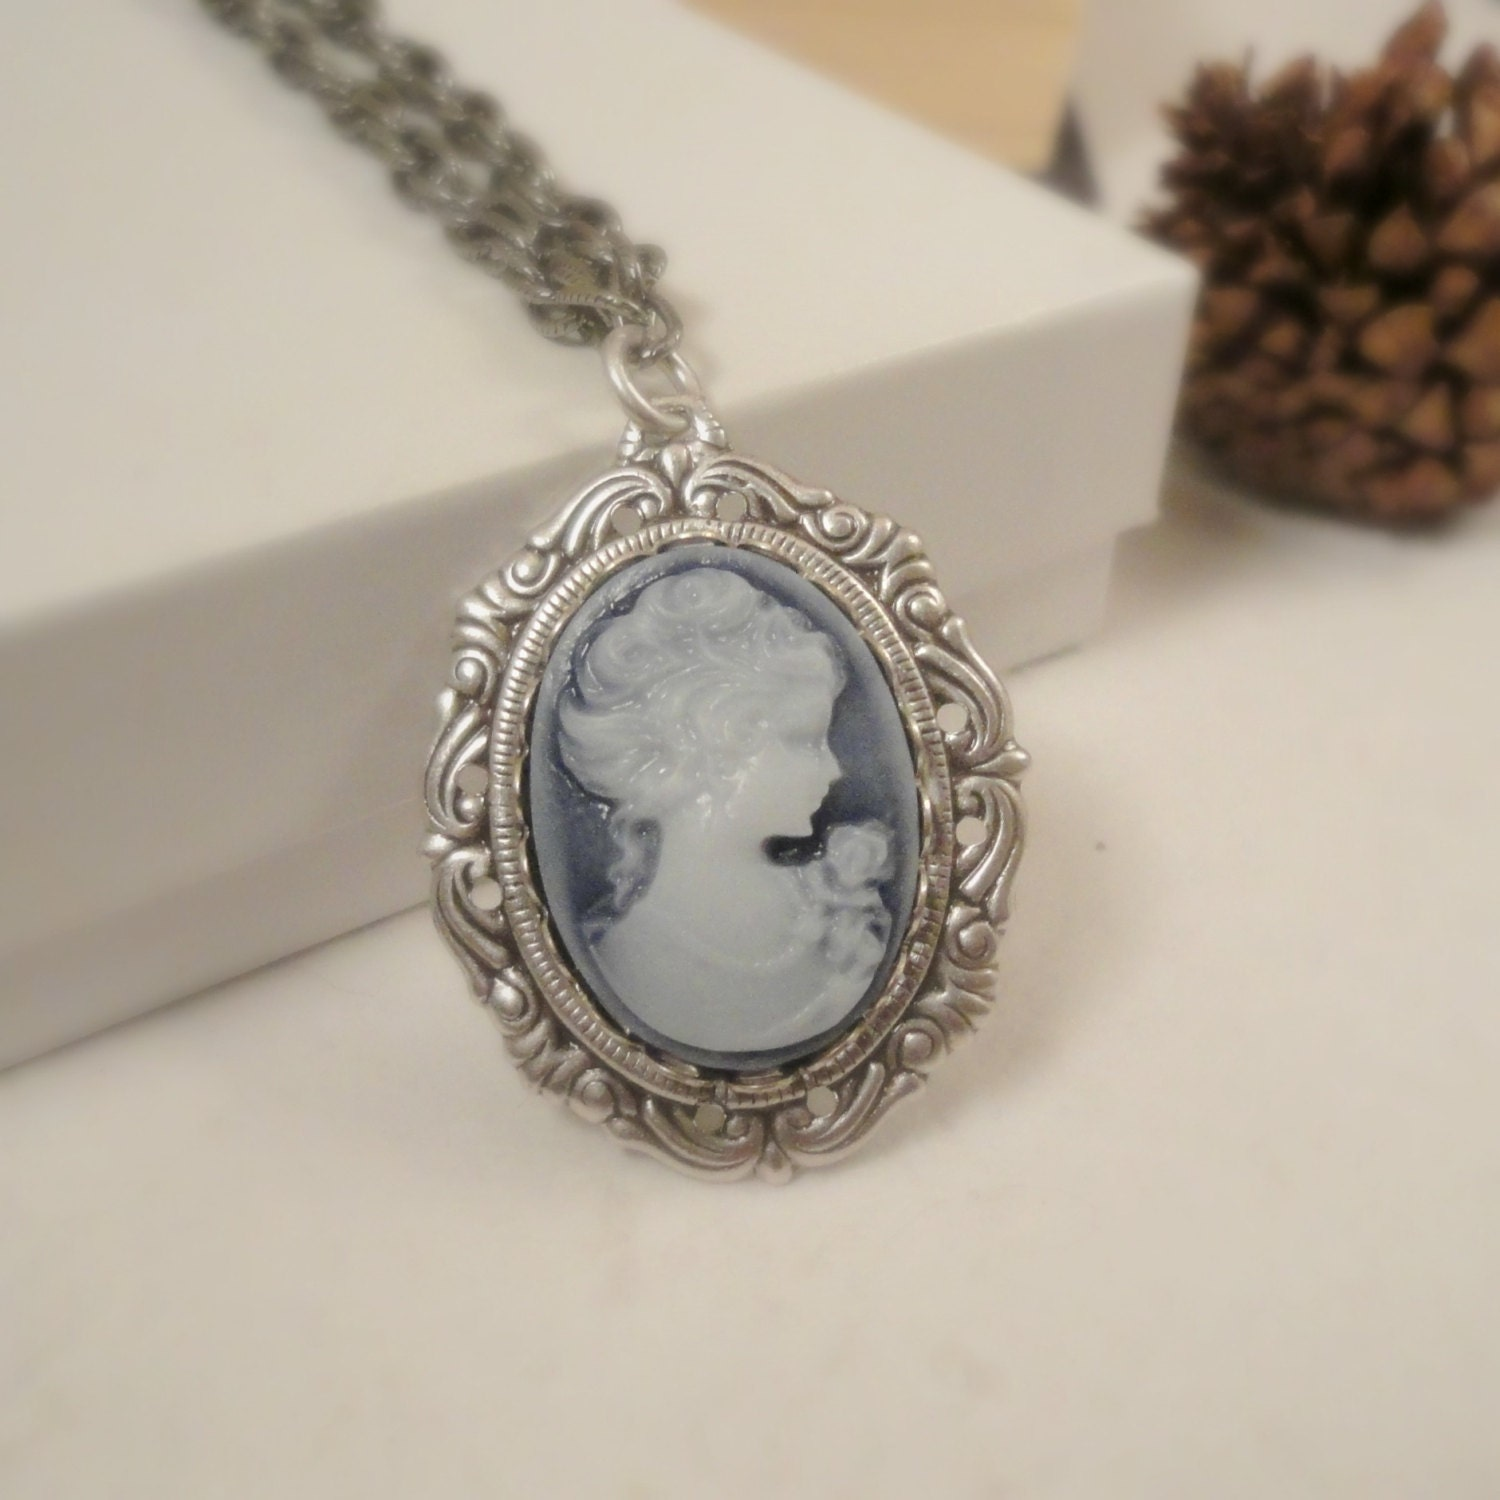 Blue Gray Cameo Necklace Vintage Long Chain Necklace Indigo Blue Gifts for Mom / Under 40 / Cameo Jewelry - pink80sgirl